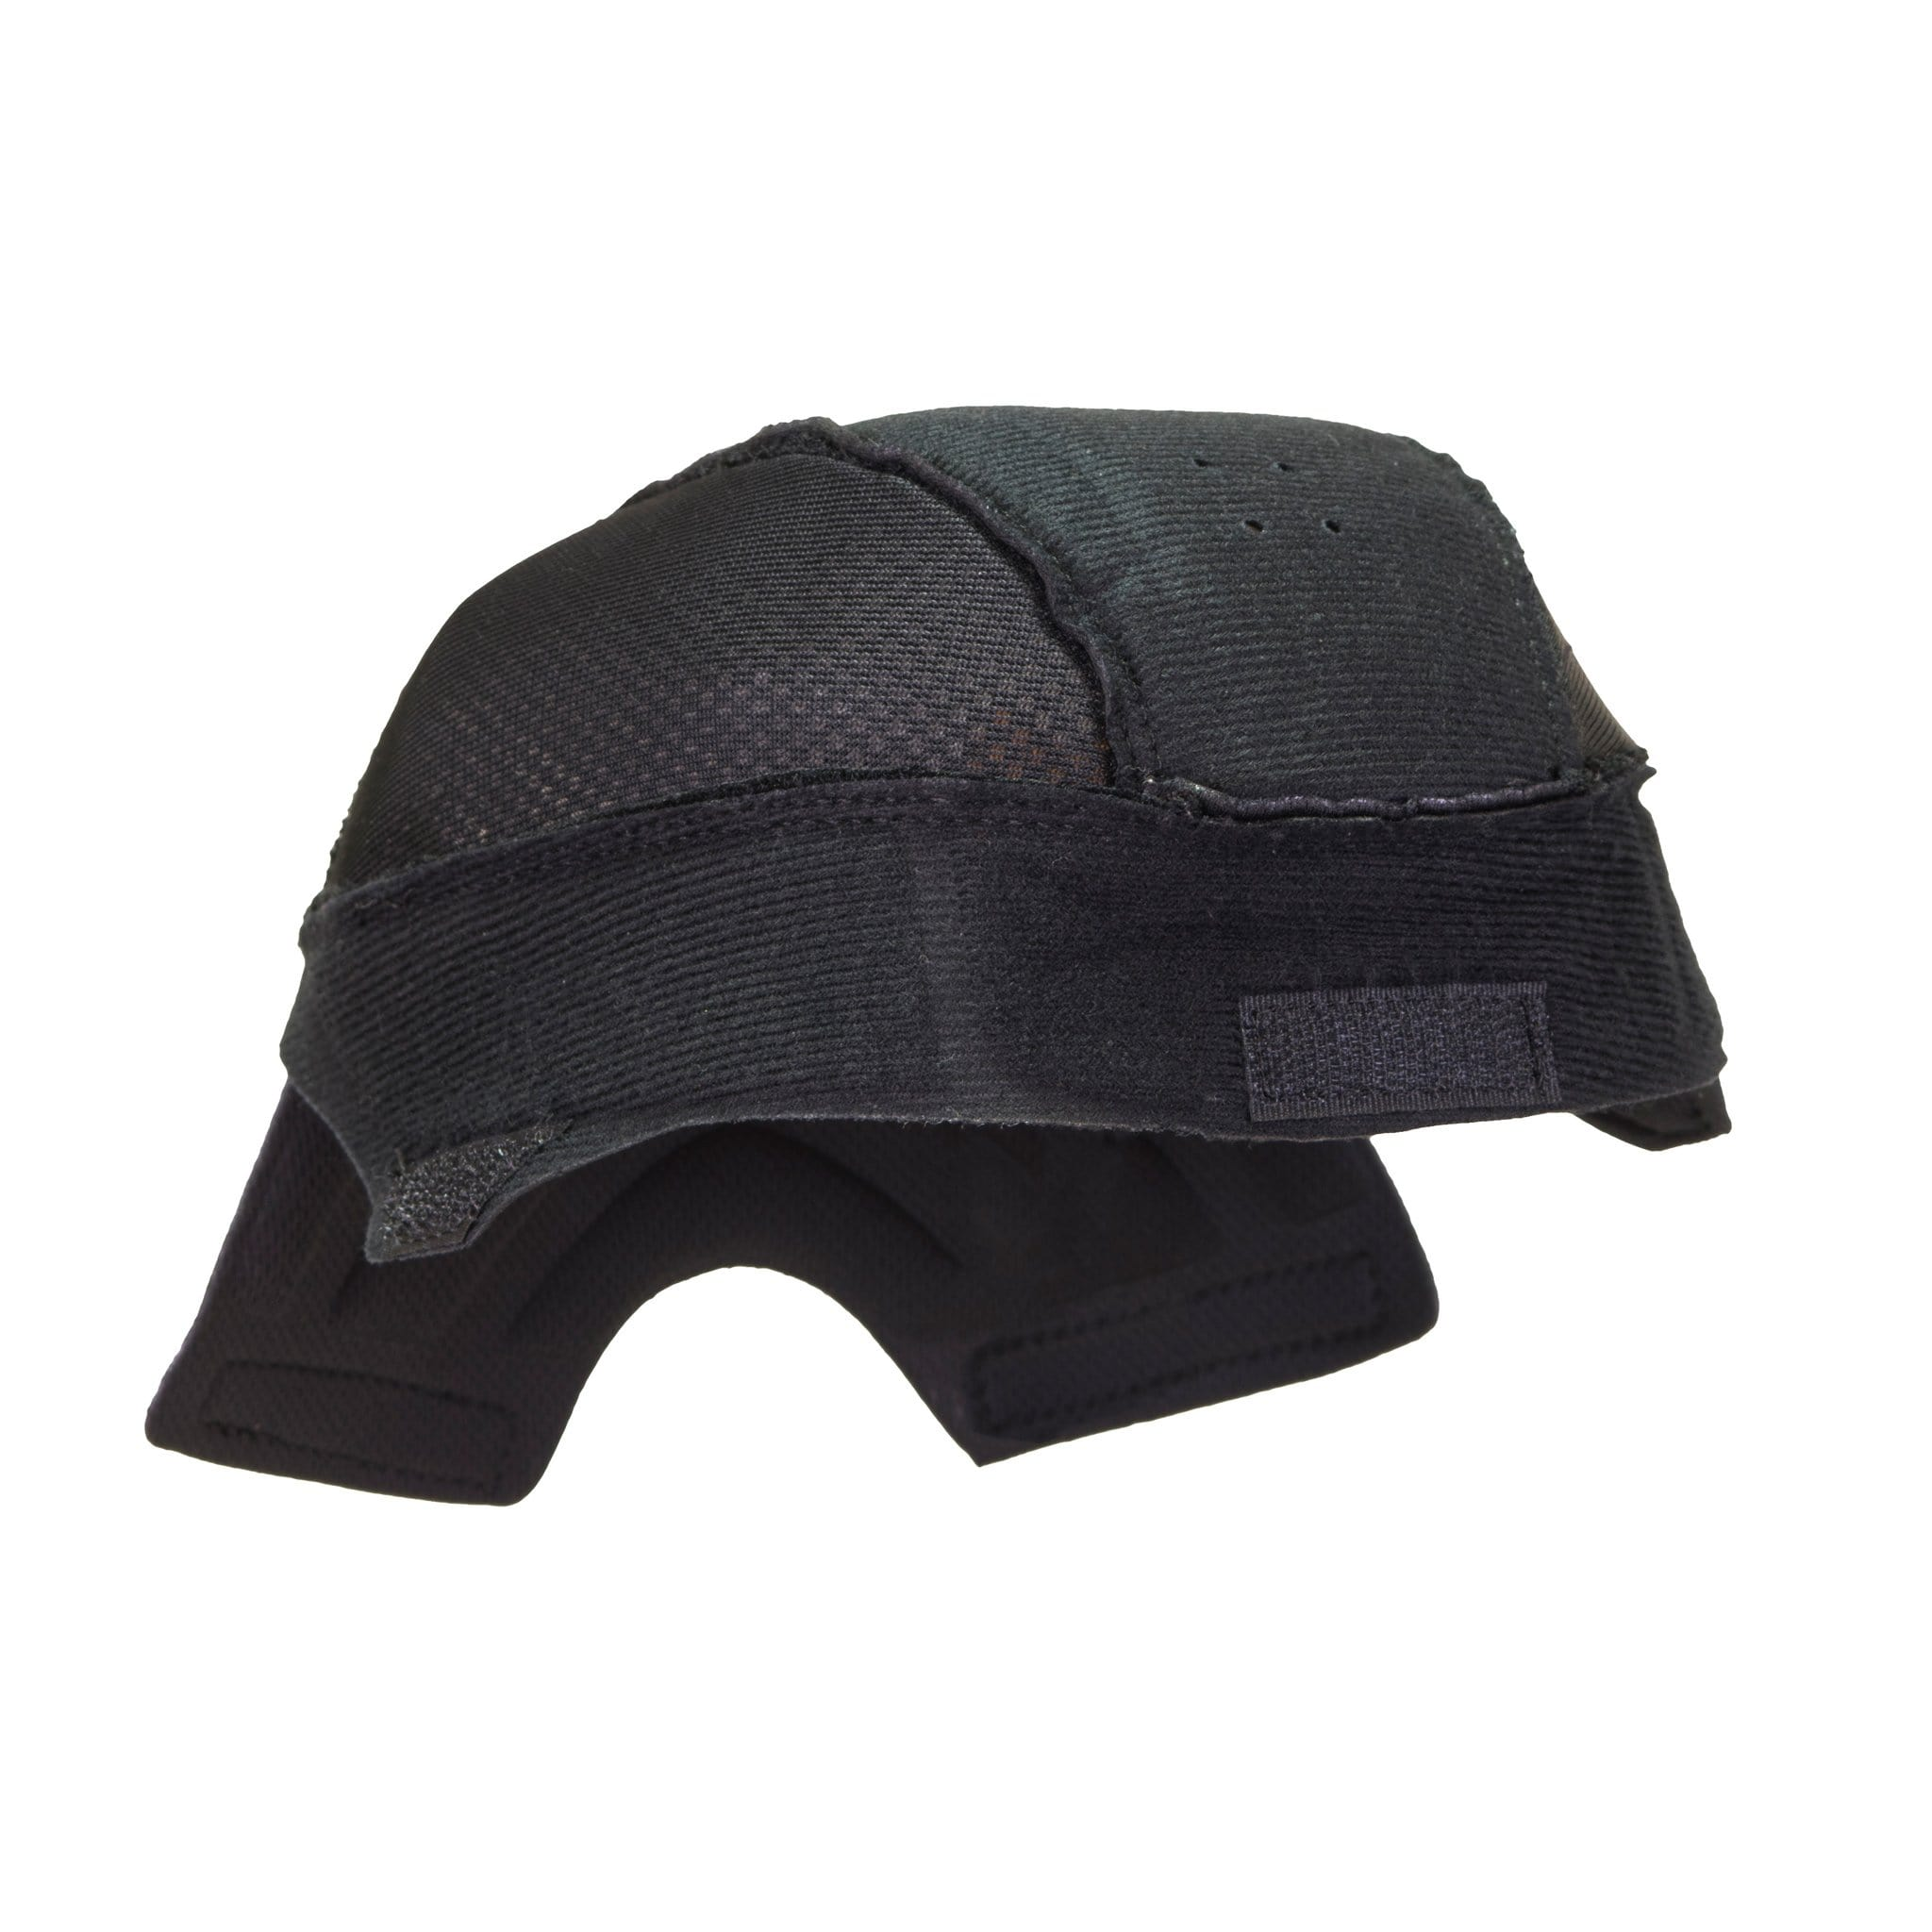 Champion Air Tech Classic Hat Liner Right Side Black